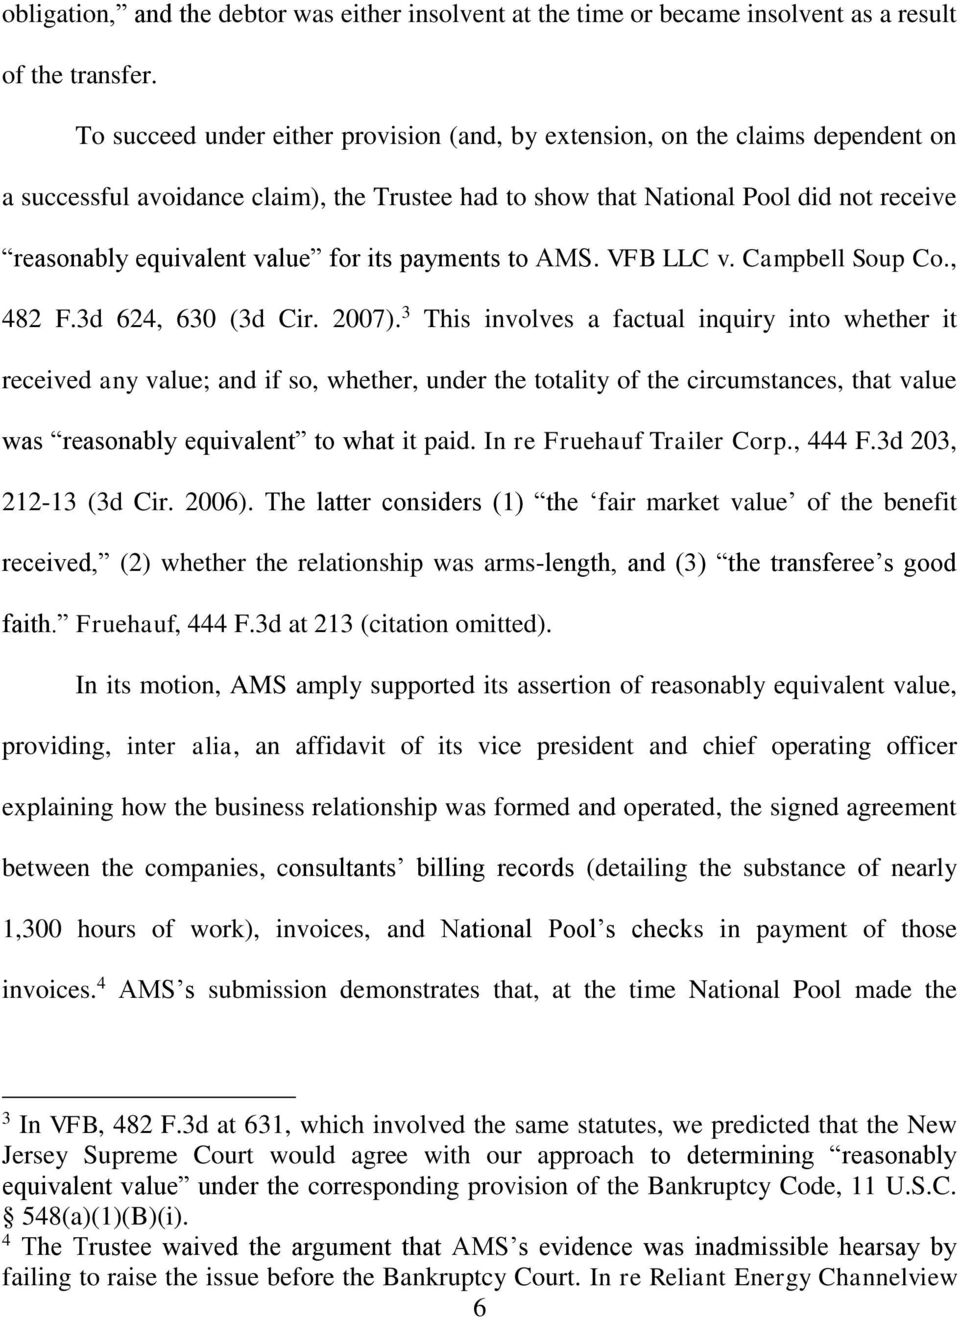 for its payments to AMS. VFB LLC v. Campbell Soup Co., 482 F.3d 624, 630 (3d Cir. 2007).